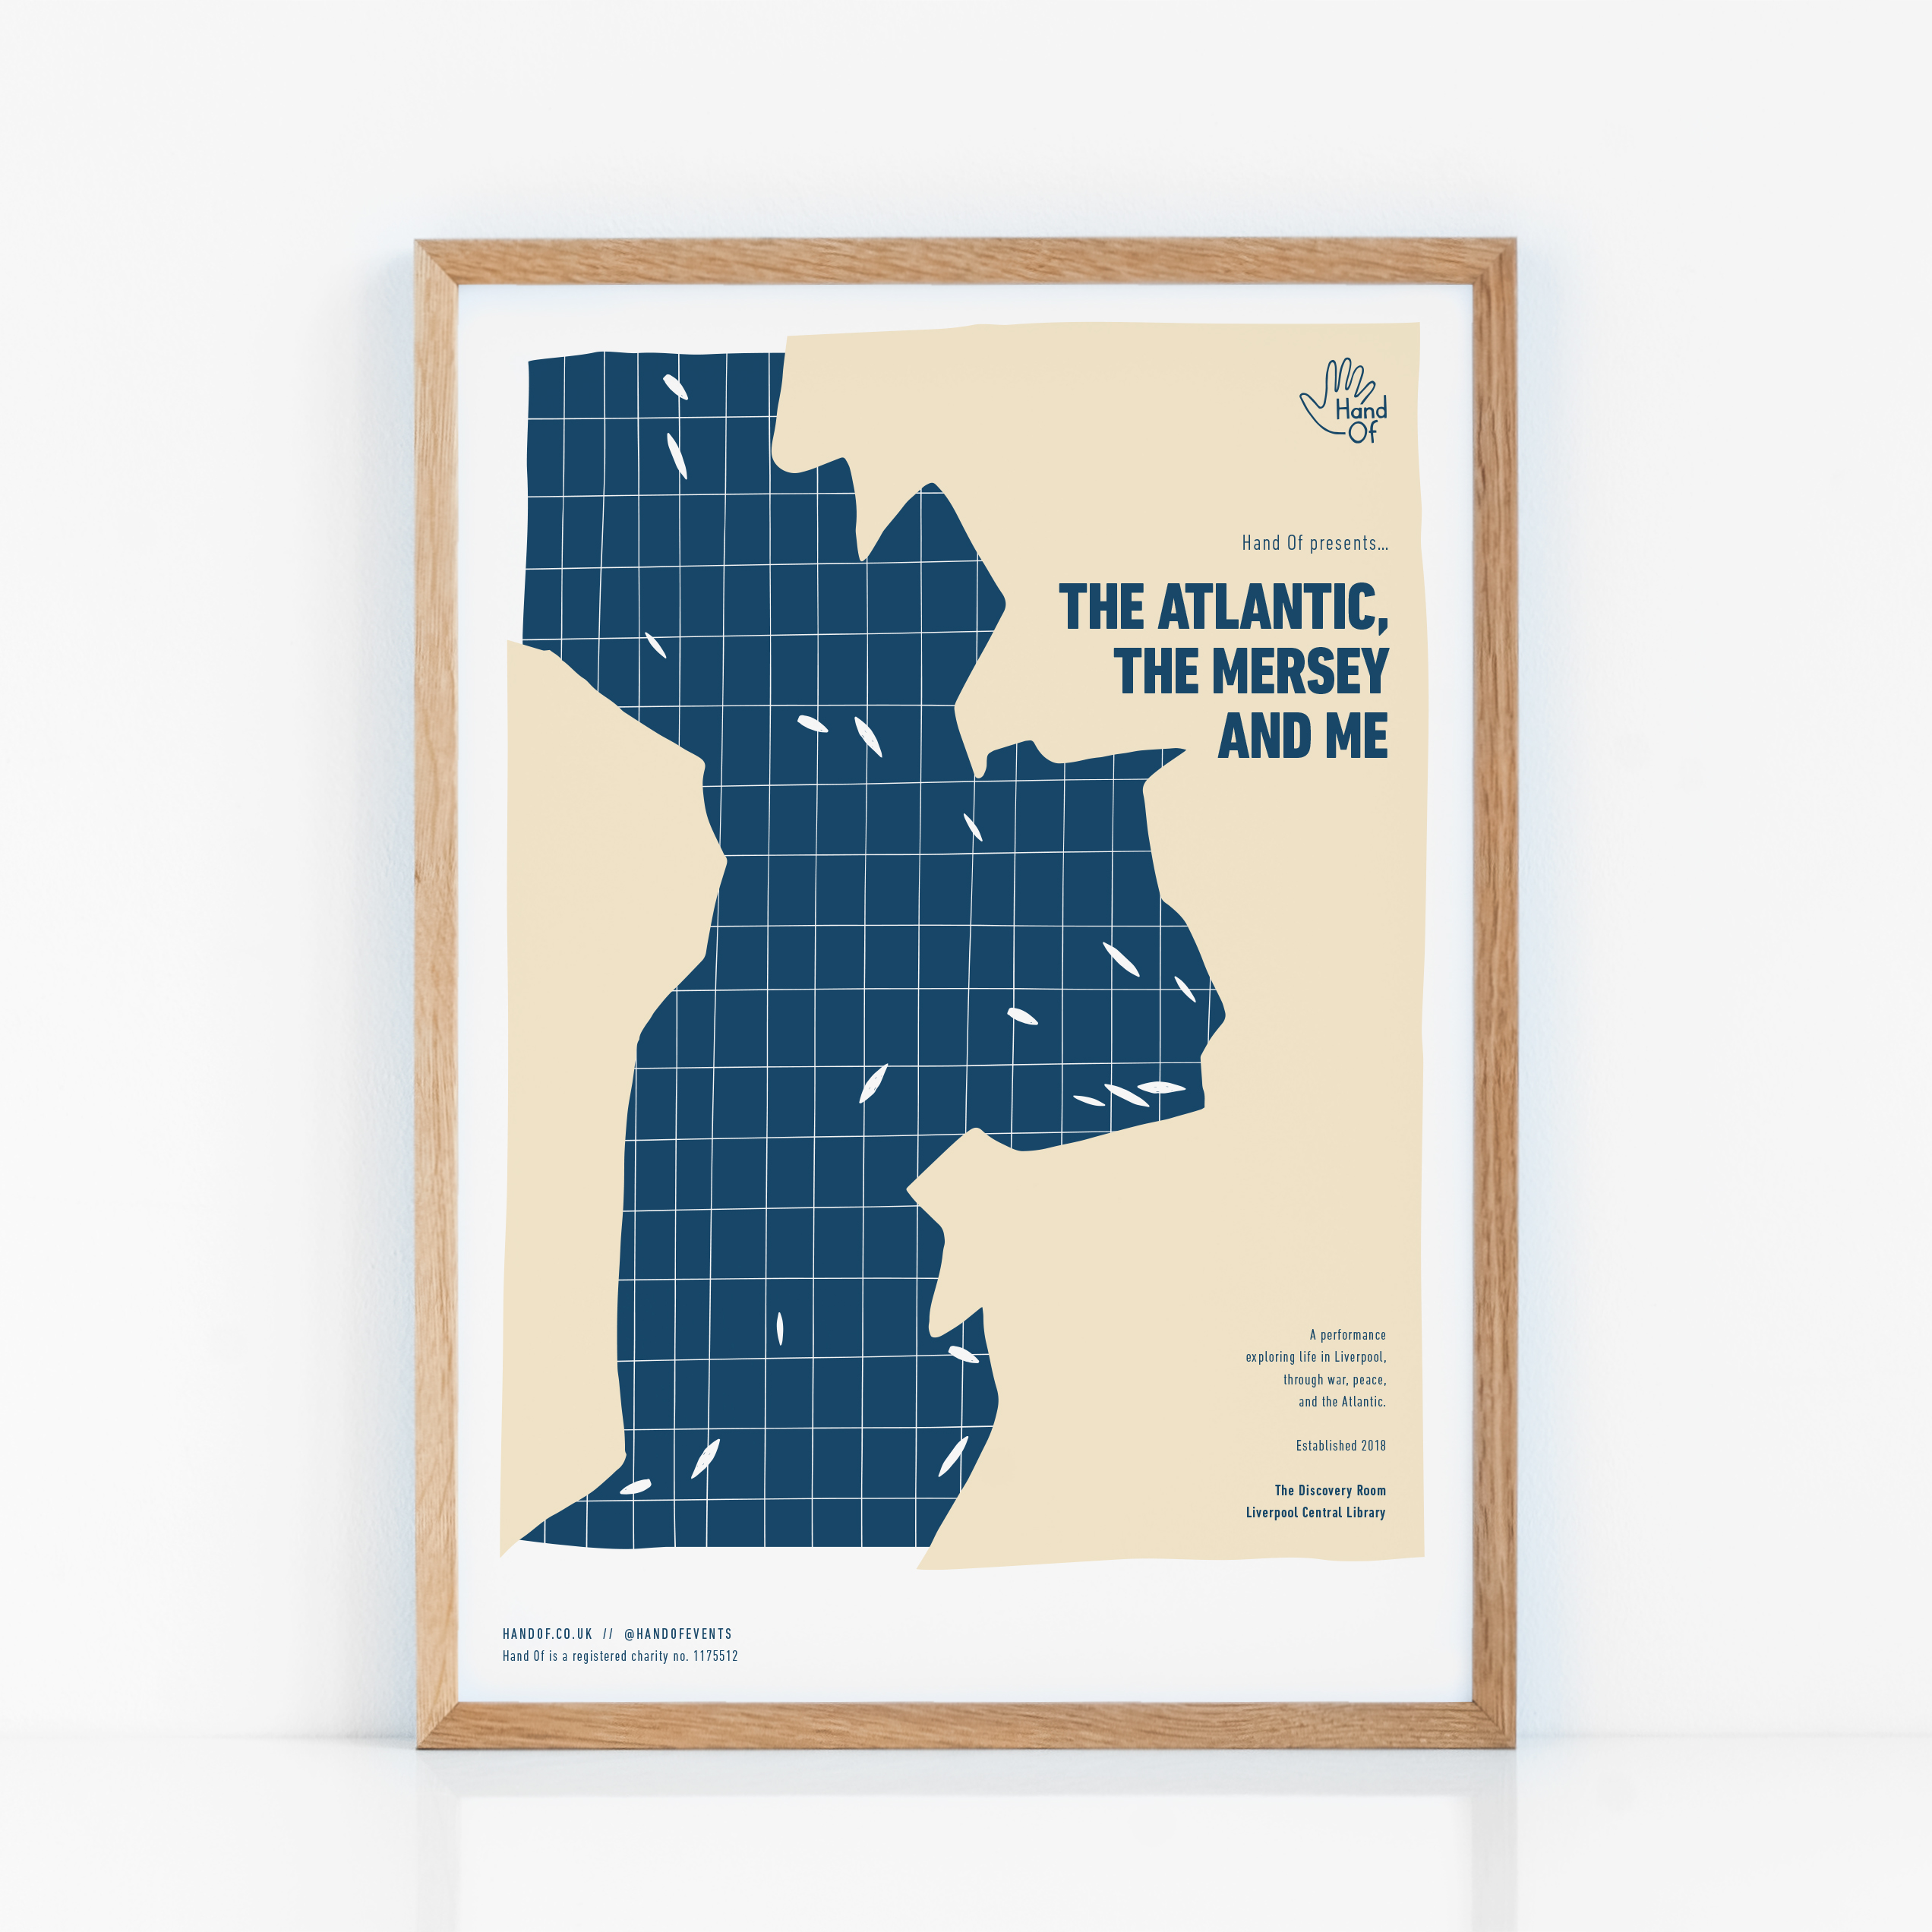 The Atlantic, The Mersey & Me (Liverpool) poster